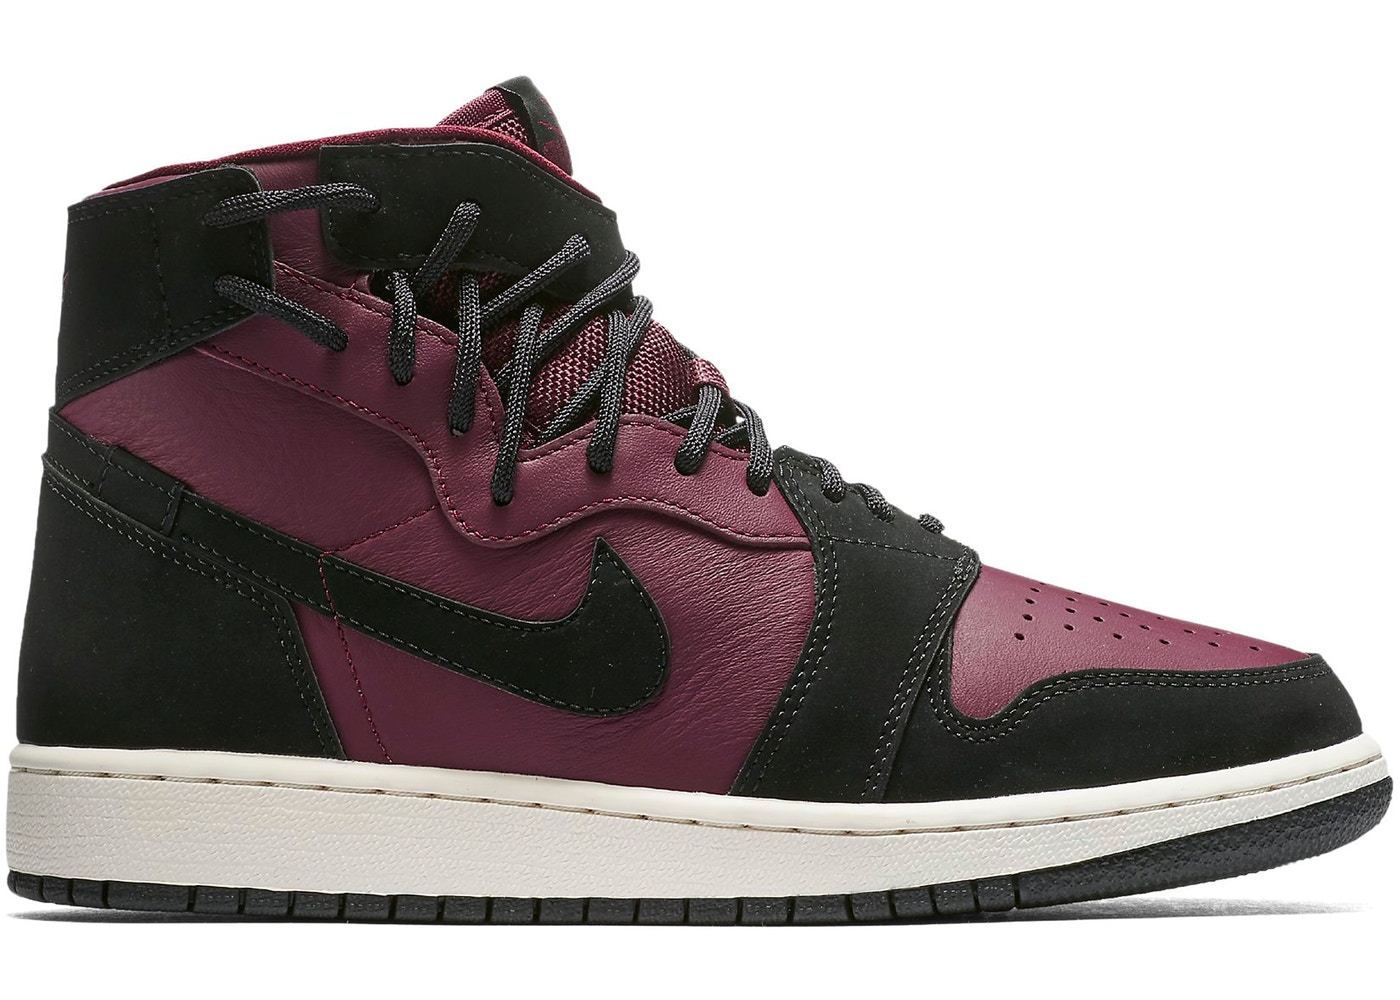 the best attitude 05050 e8c99 Jordan 1 Rebel XX Bordeaux (W)